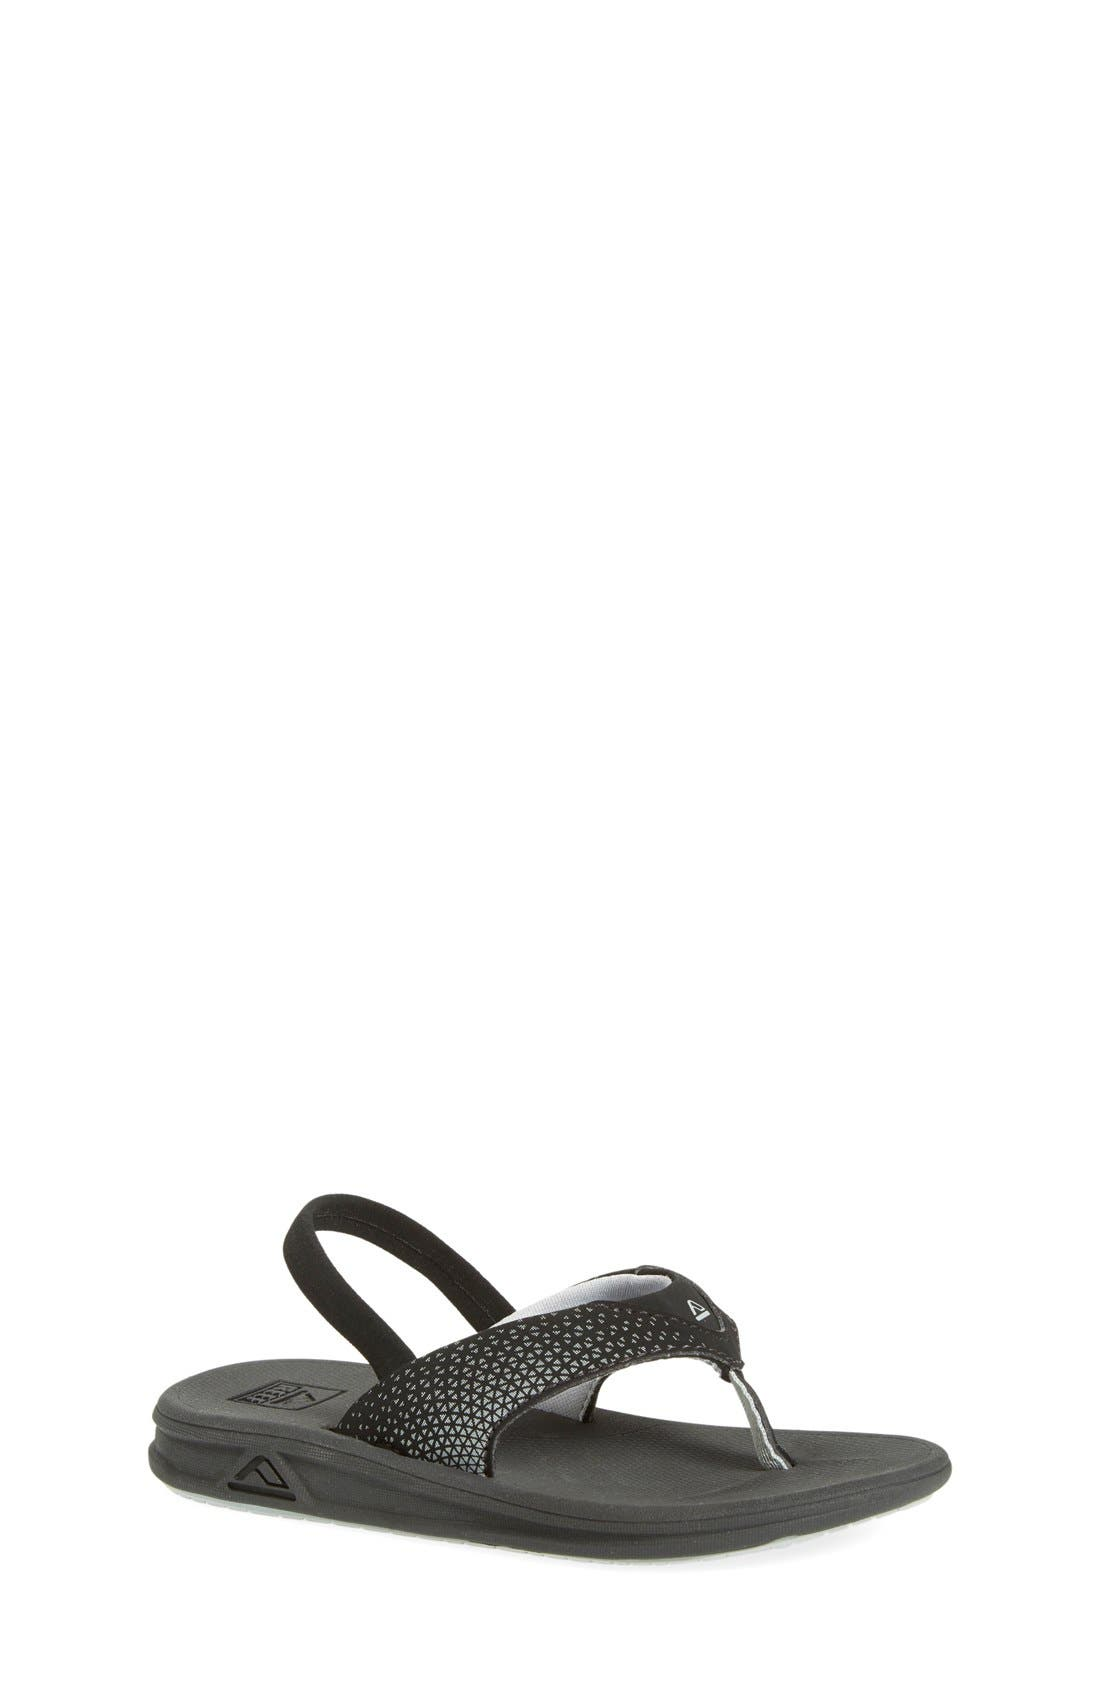 'Grom Rover' Water Friendly Sandal,                             Main thumbnail 1, color,                             BLACK